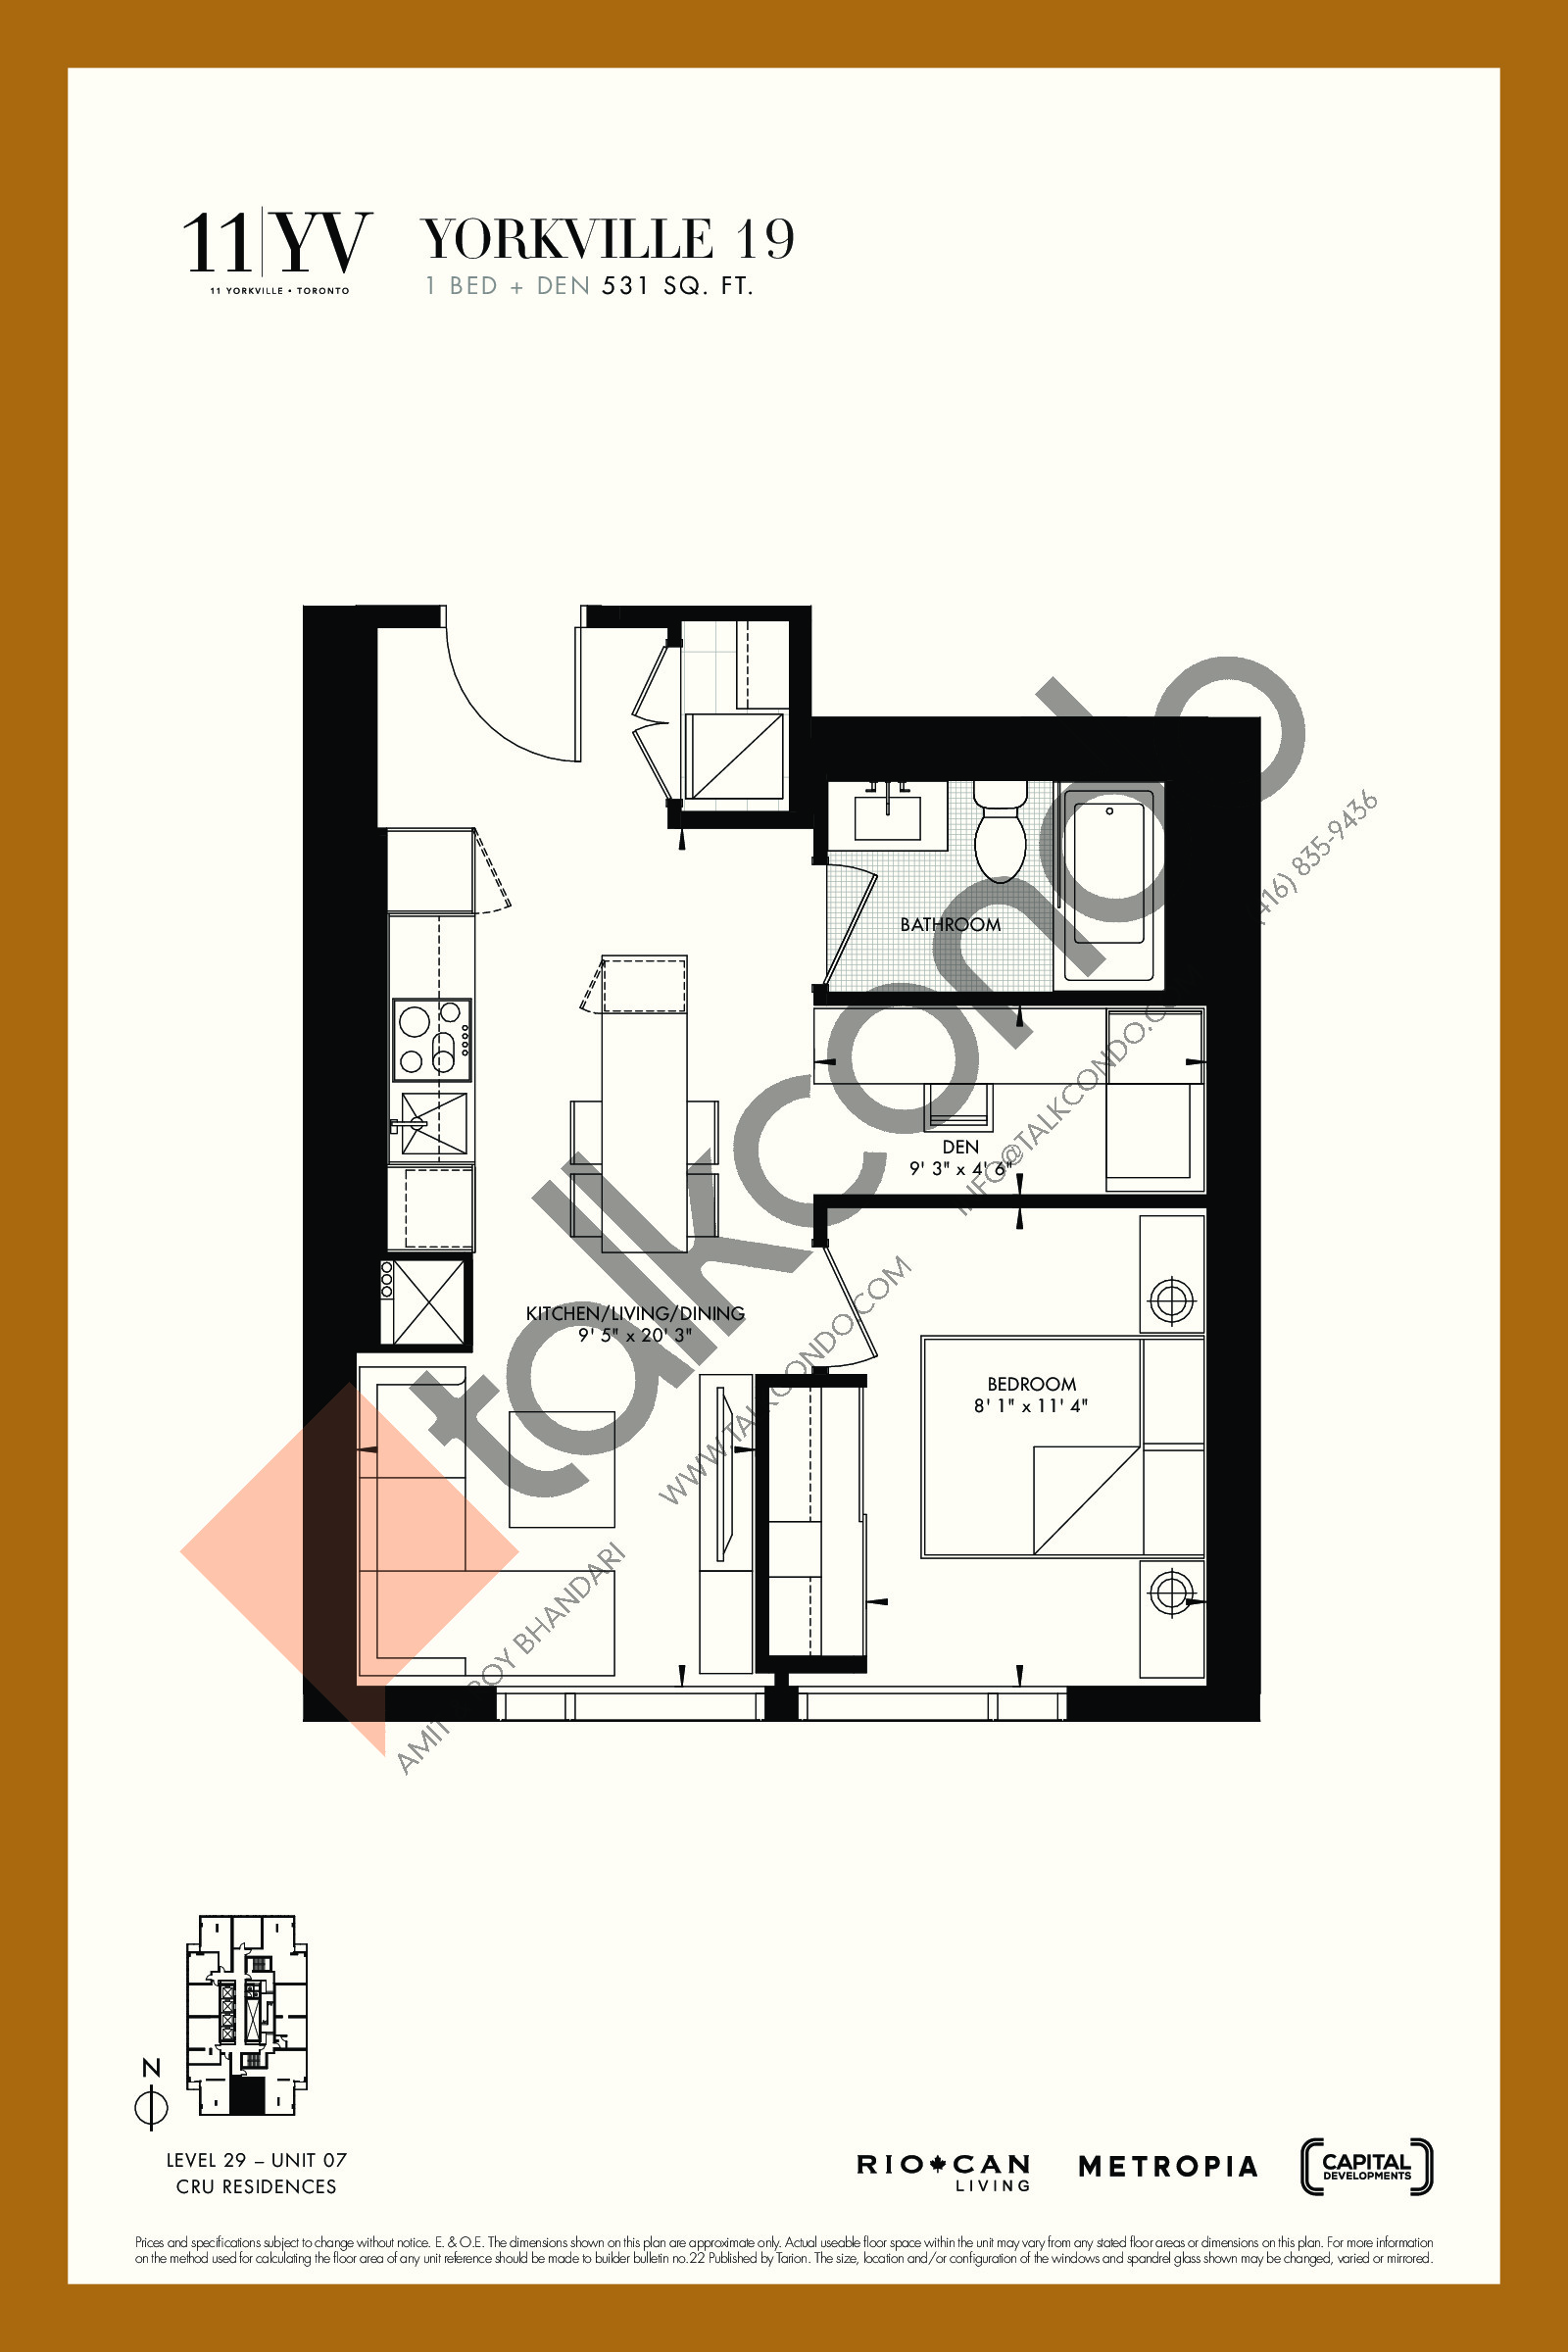 Yorkville 19 Floor Plan at 11YV Condos - 531 sq.ft